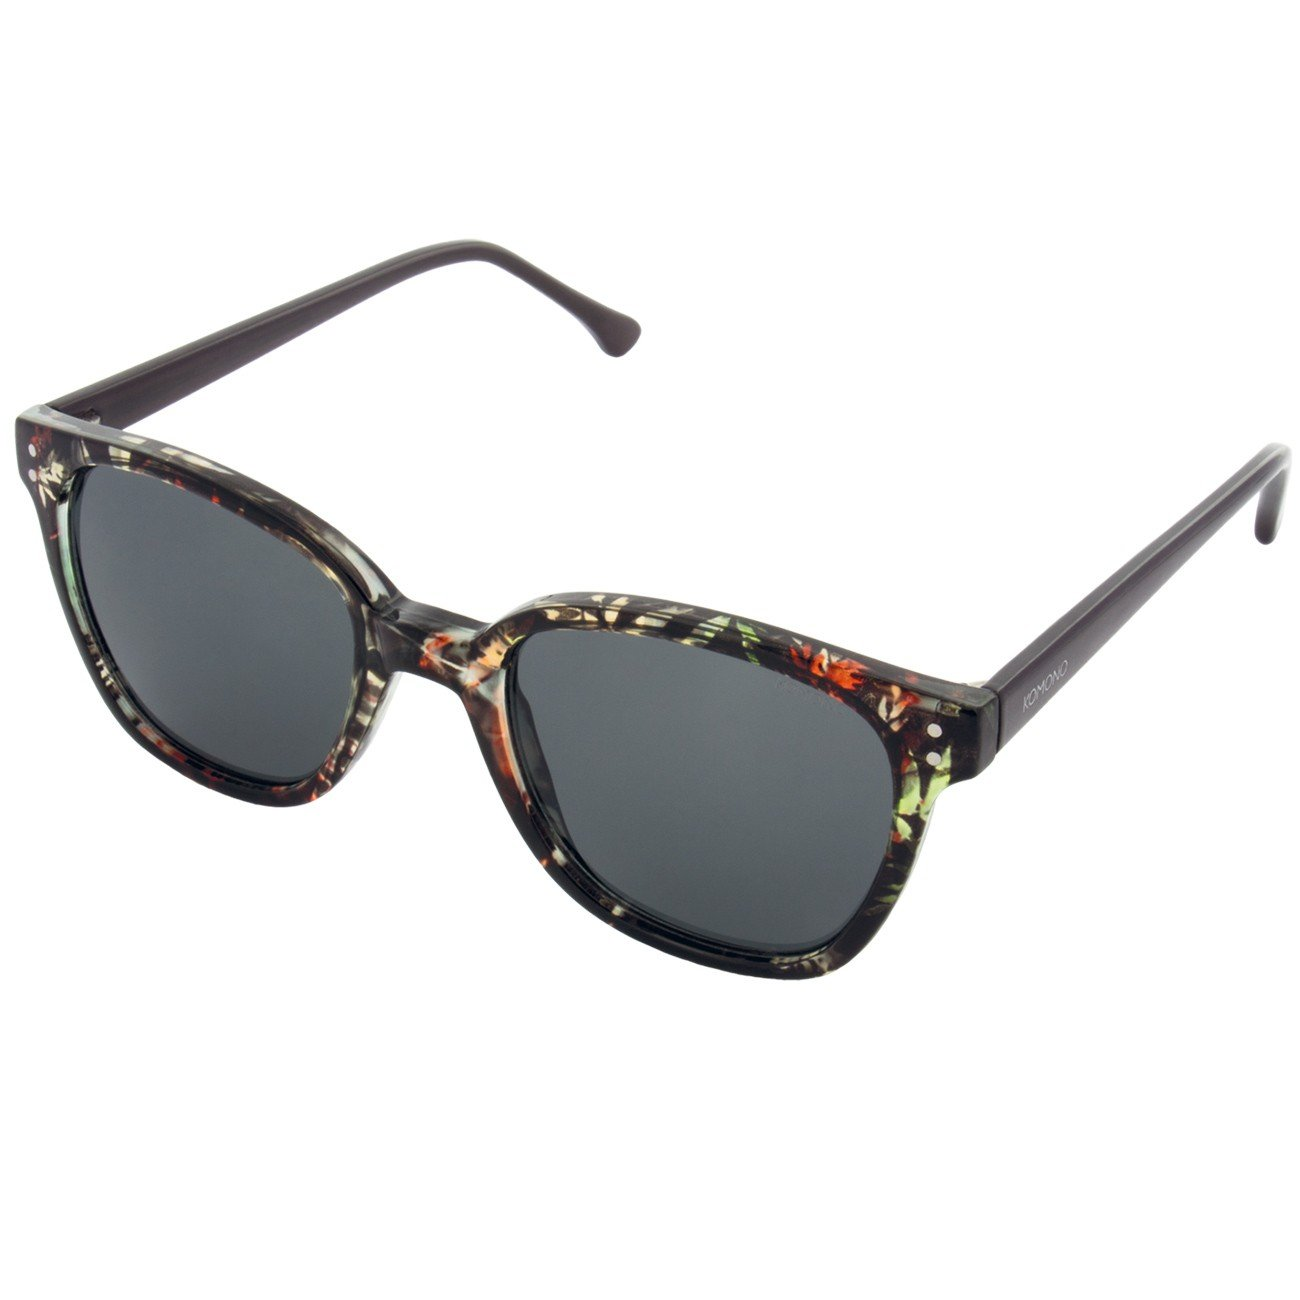 4a3c2b9ece Amazon.com  Komono Sunglasses Multi color Frame Grey Lens Sunglasses   Clothing